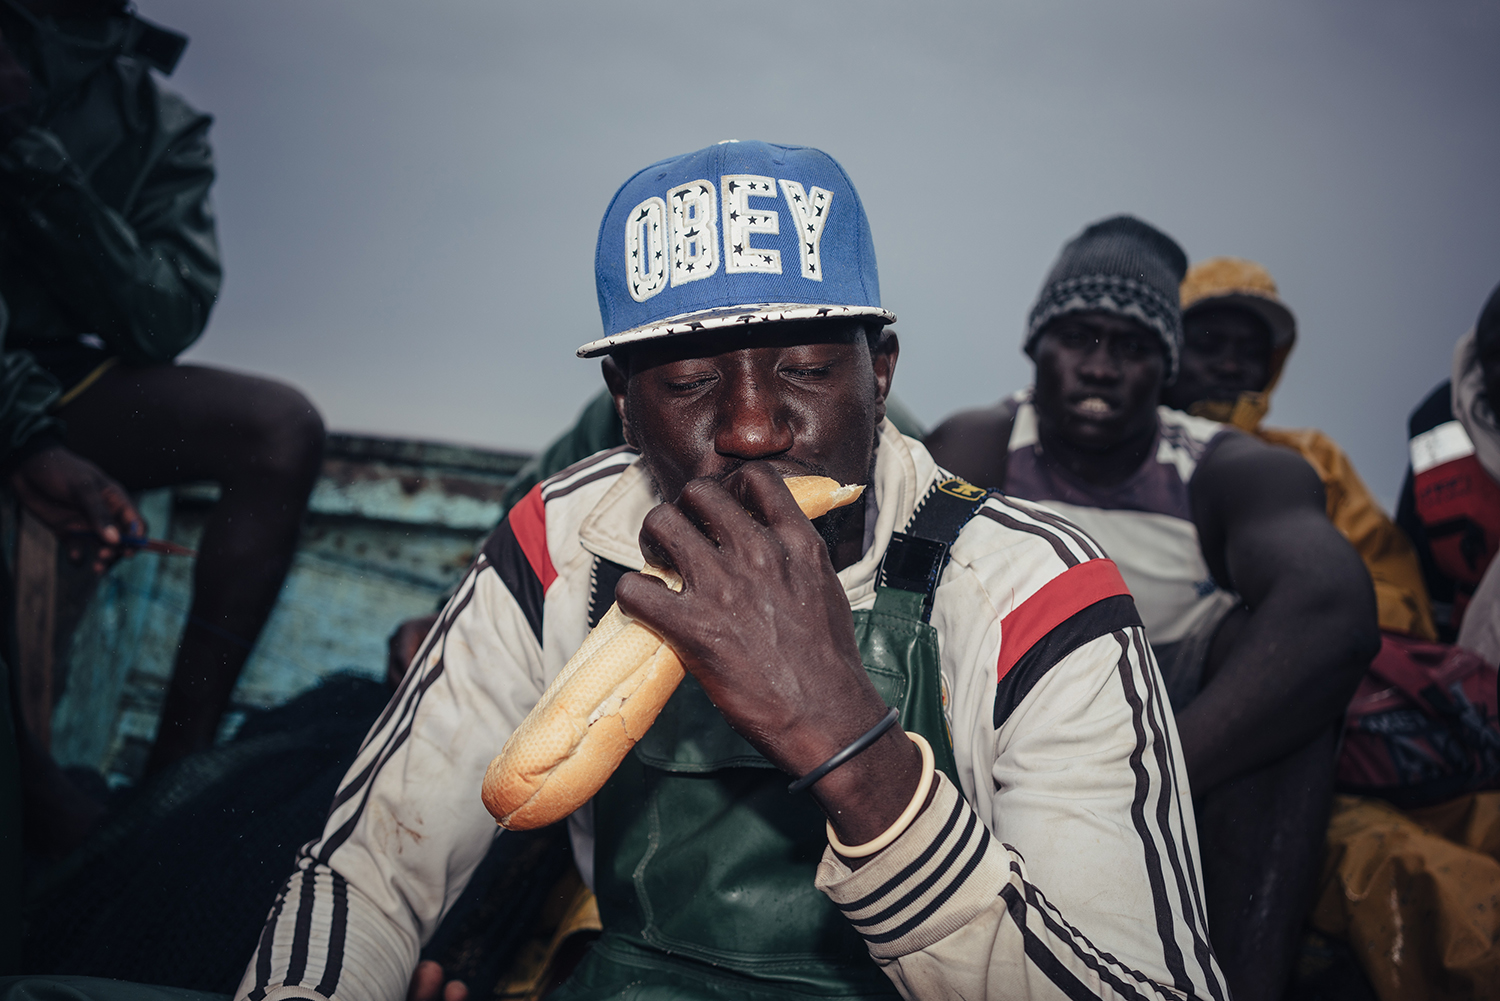 Youssou Diouf, 38, captain of a local fishing ship from Joal-Fadiouth, Senegal, eats a baguette during a break, July 15, 2016. The fishermen's diet while at sea consists almost exclusively of bread and roasted fish.